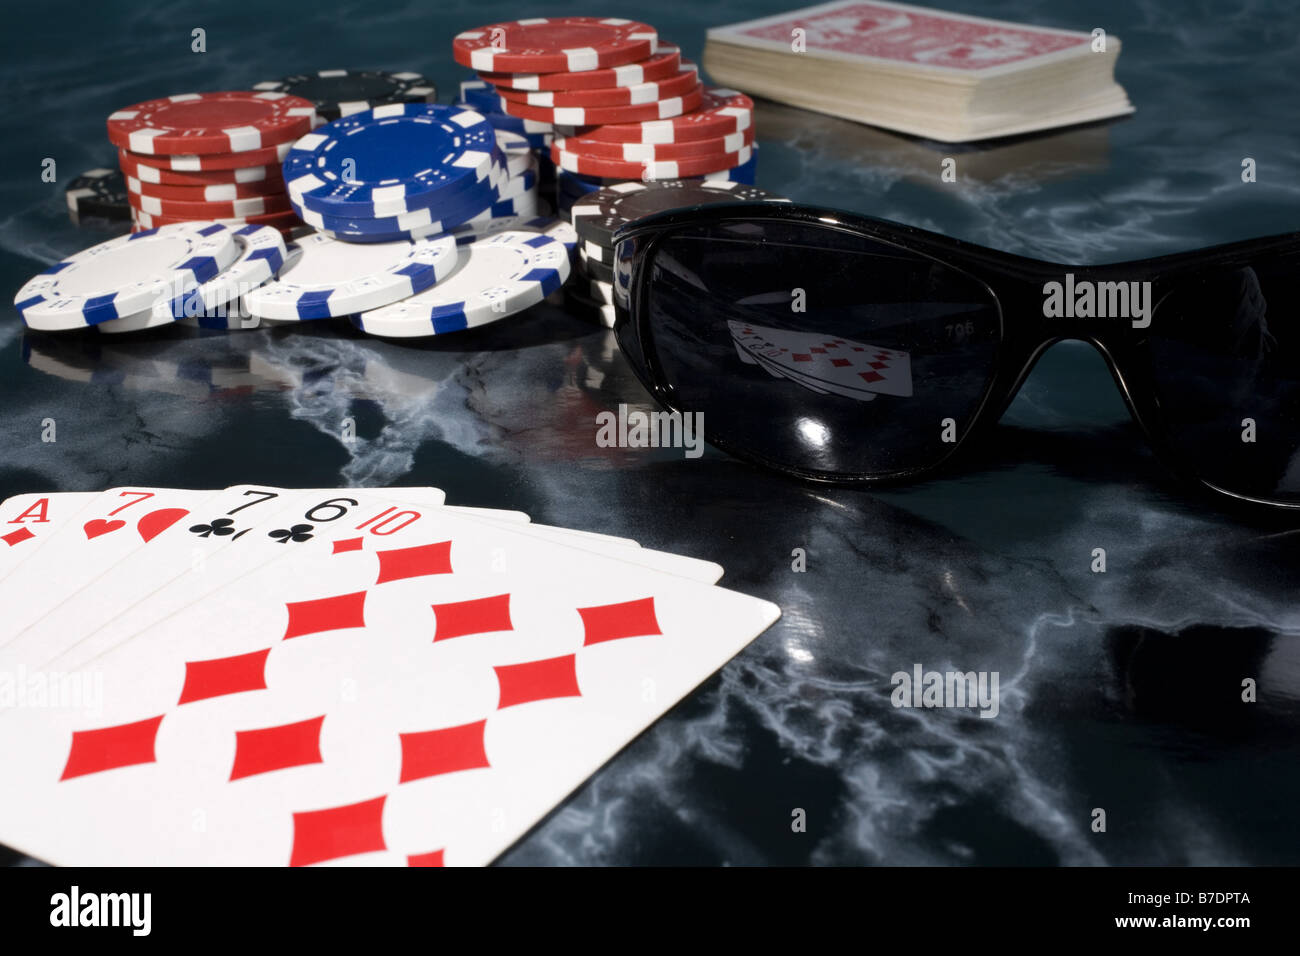 poker hands with pile of chips - Stock Image